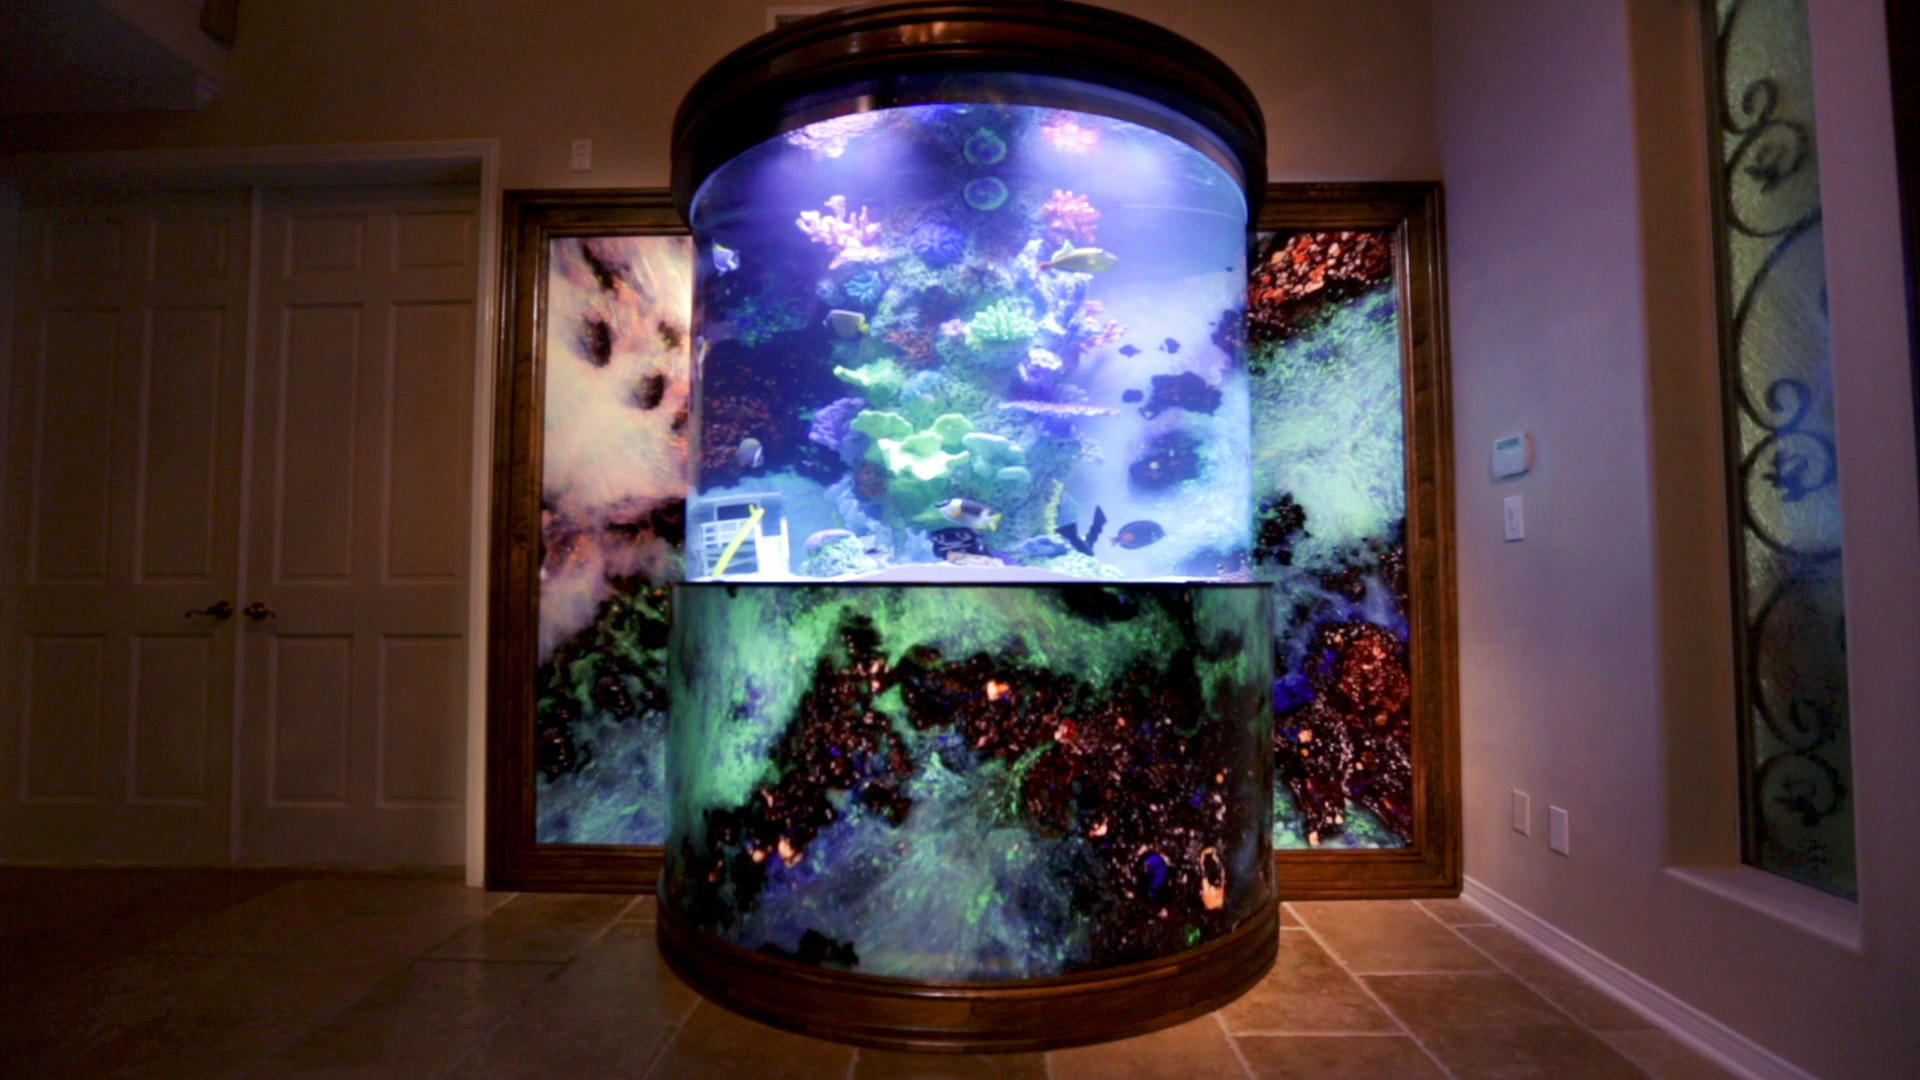 A truly hofftastic tank tanked animal planet for Atm fish tank